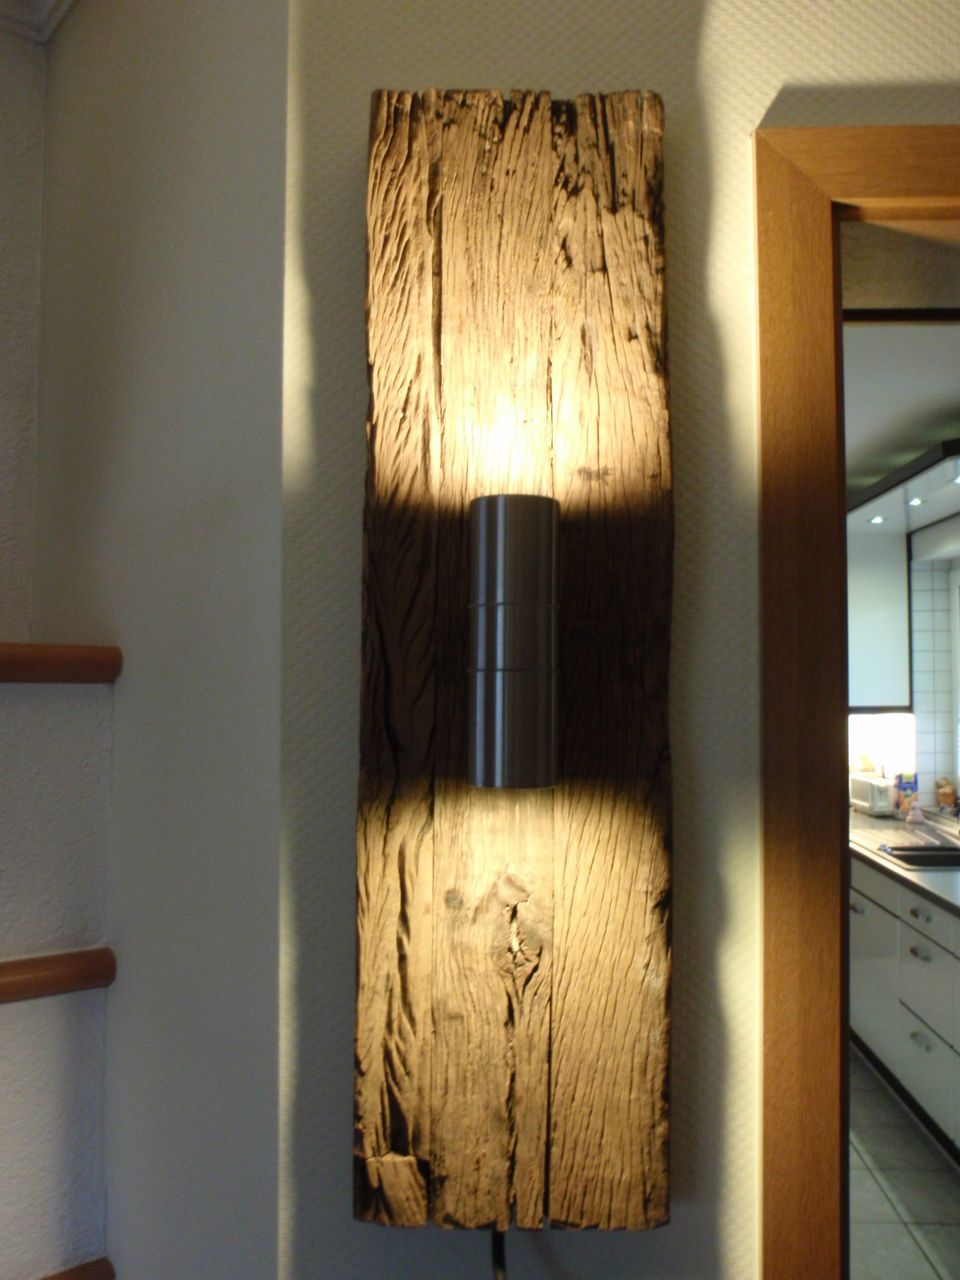 design wandlampe wandstrahler wandleuchte 73cm aus historischem holz gefertigt best of. Black Bedroom Furniture Sets. Home Design Ideas